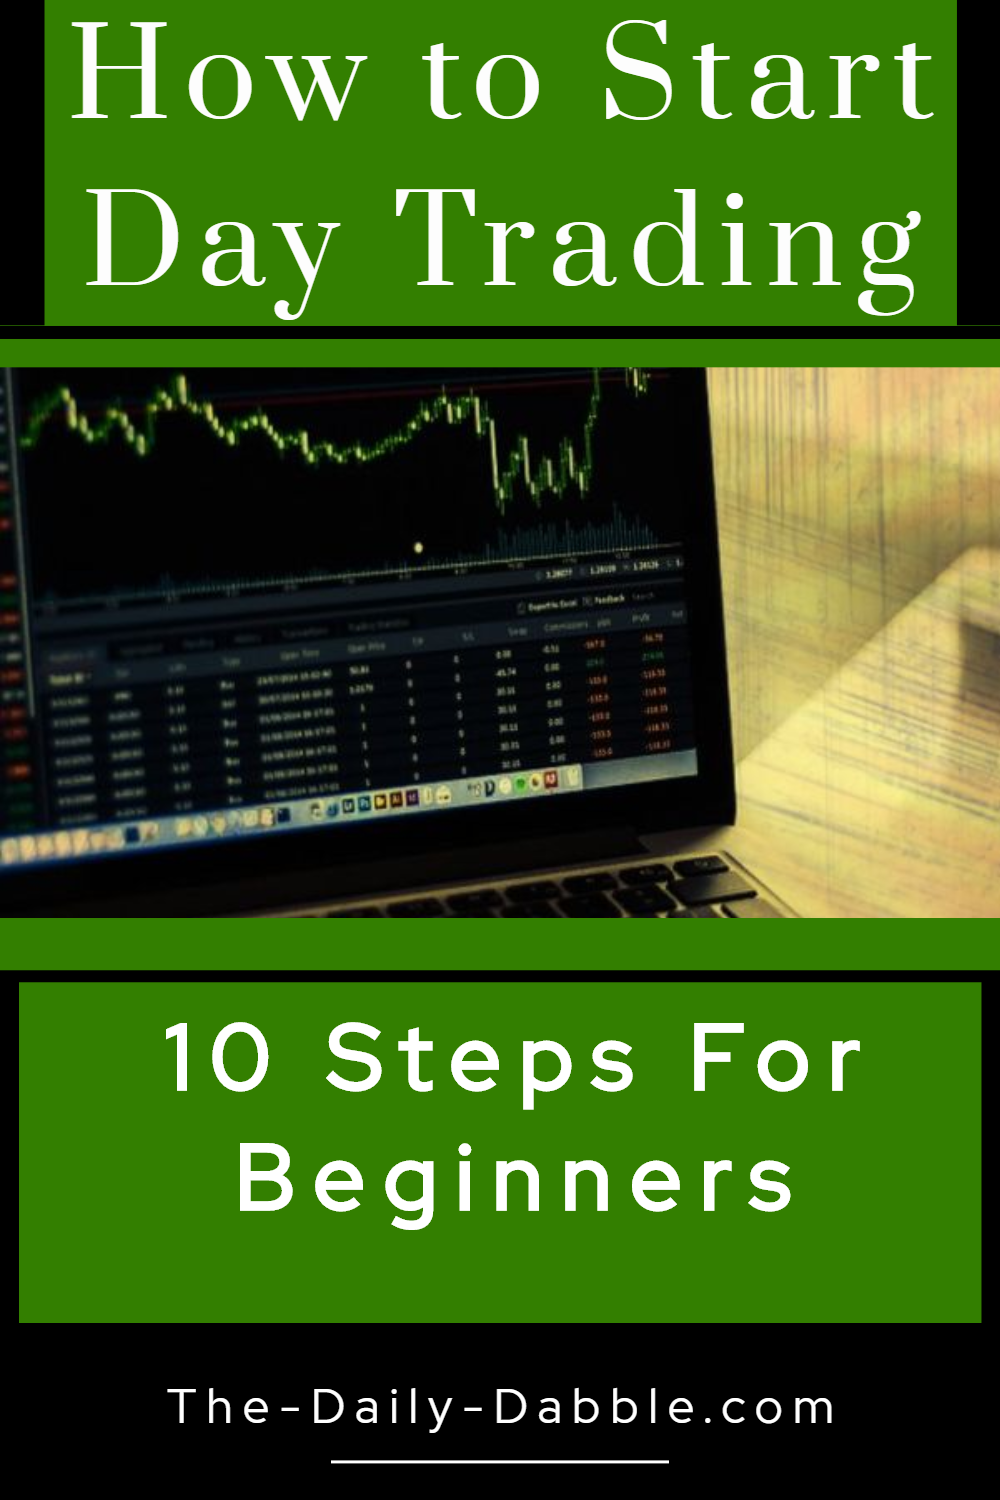 How To Start Day Trading For Beginners 10 Steps In 2020 Day Trading Investing Money Finance Investing